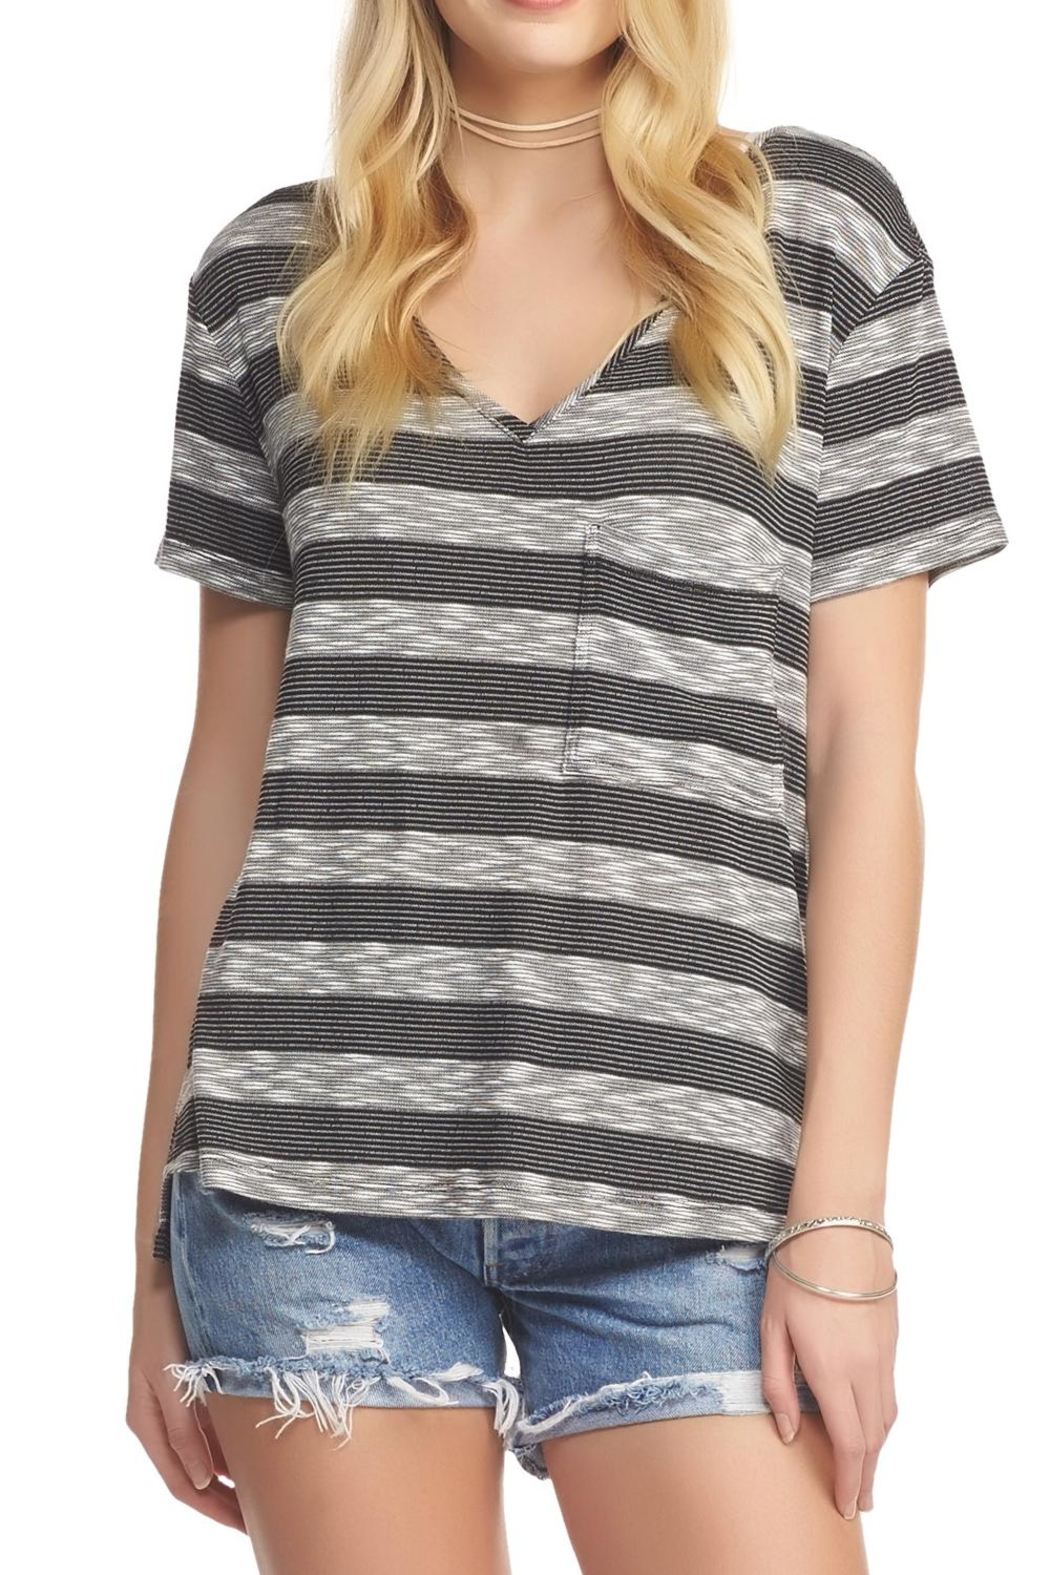 Tart Collections Striped Tee Top - Main Image